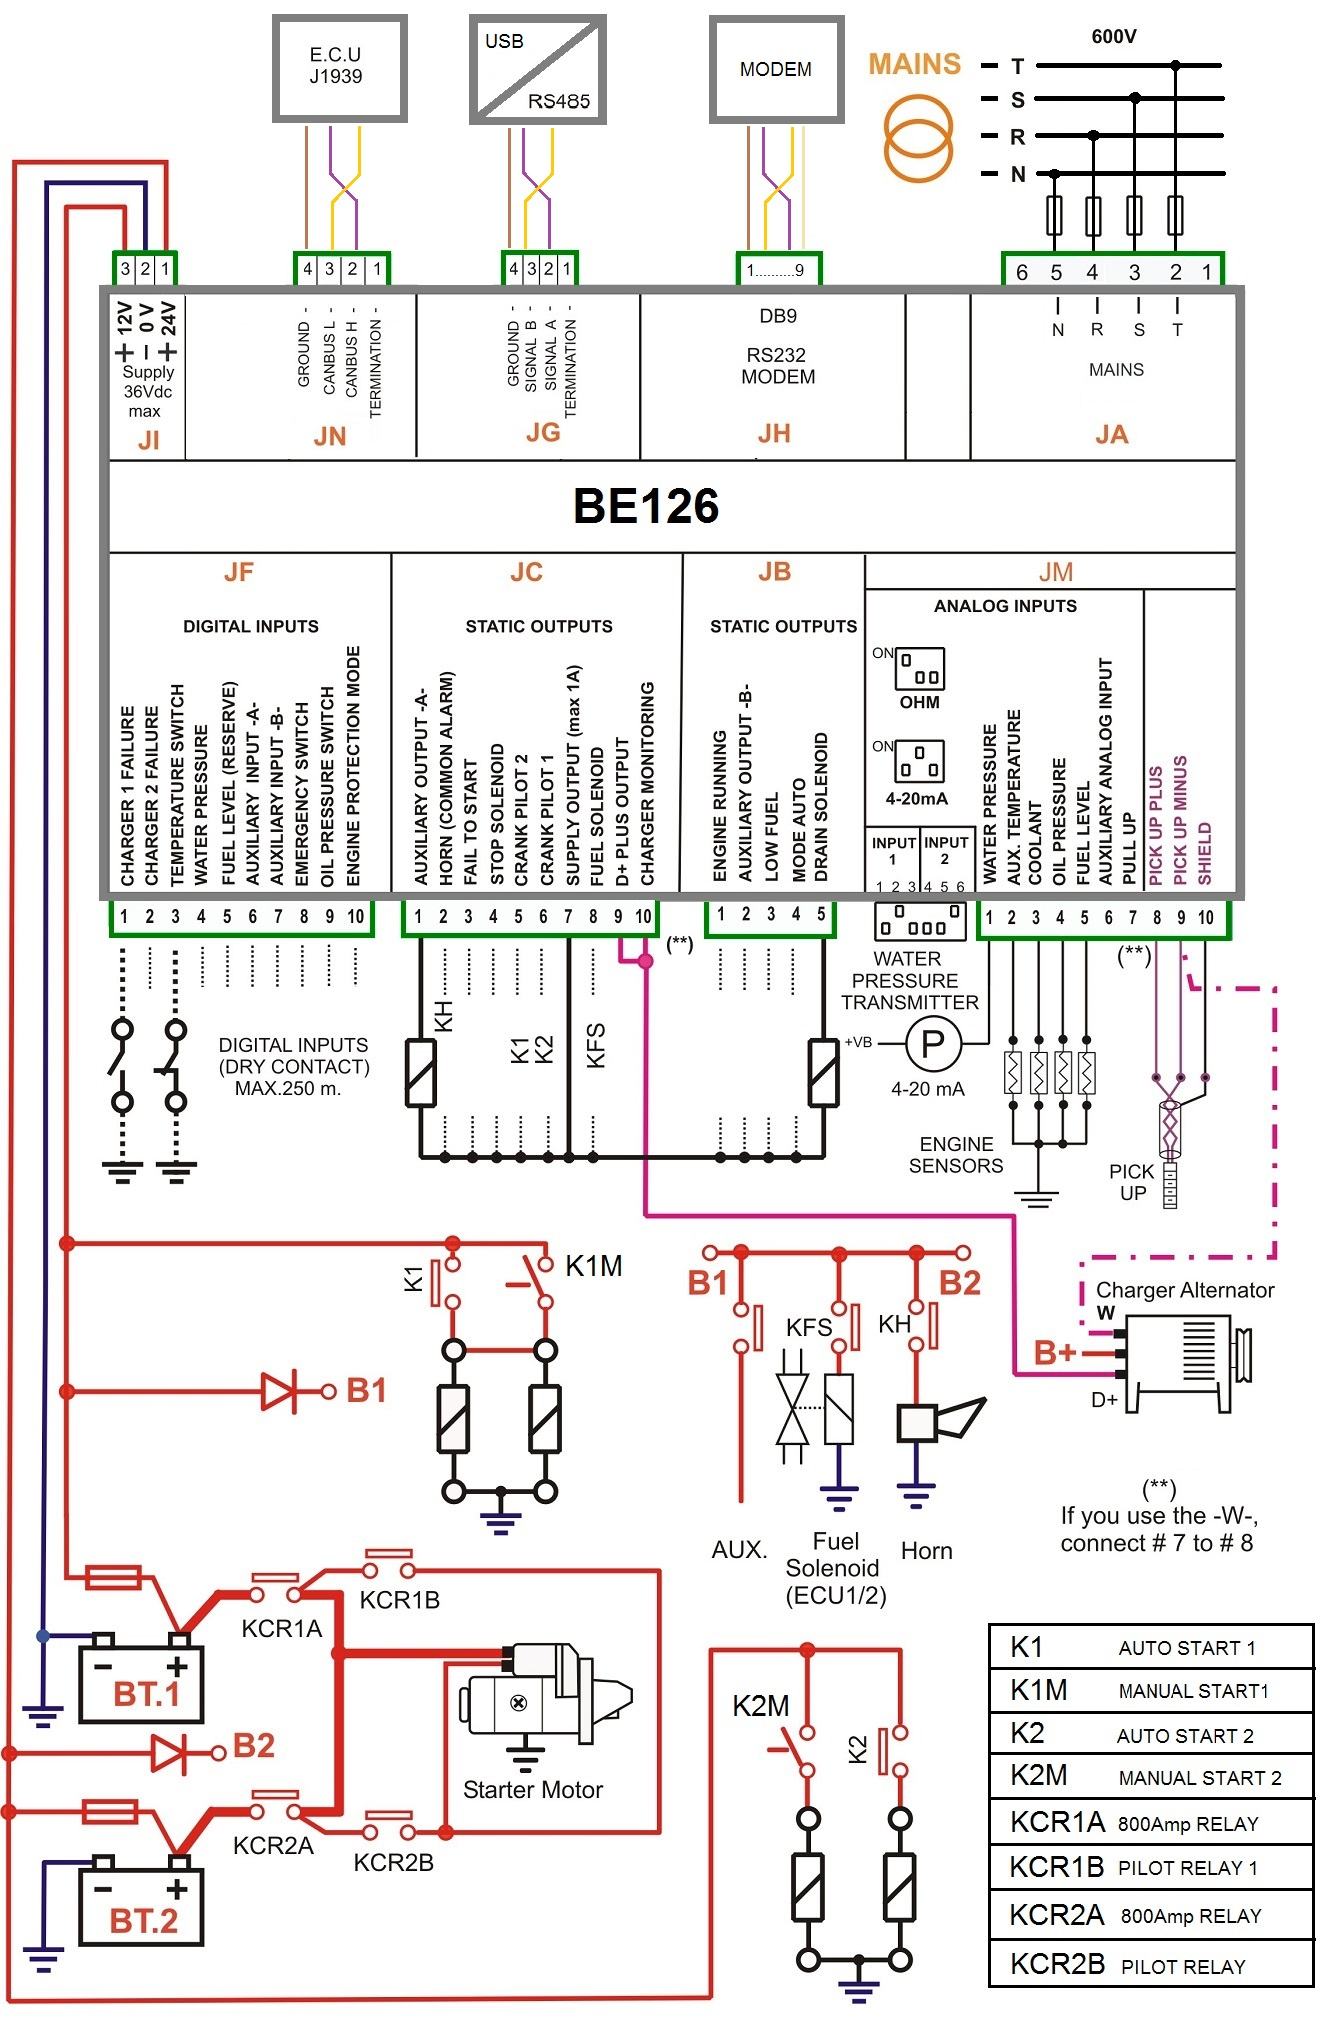 NFPA20 fire pump controller wiring diagram fire pump wiring diagram fire pump electrical requirements \u2022 free control panel electrical wiring basics at readyjetset.co